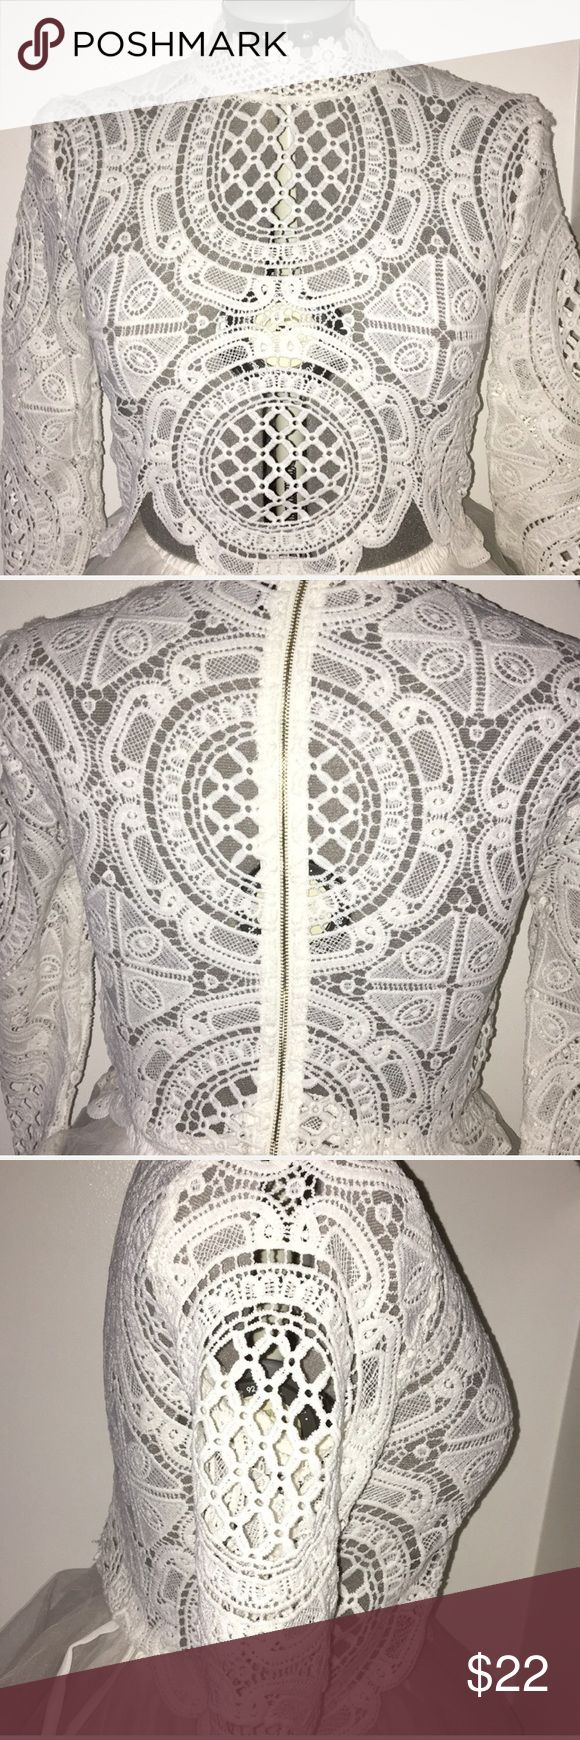 Long Sleeved Lace Top 2016 *Chicago Akira* White Lace Top.  Very Elegant but Edgy as well. AKIRA Tops Crop Tops